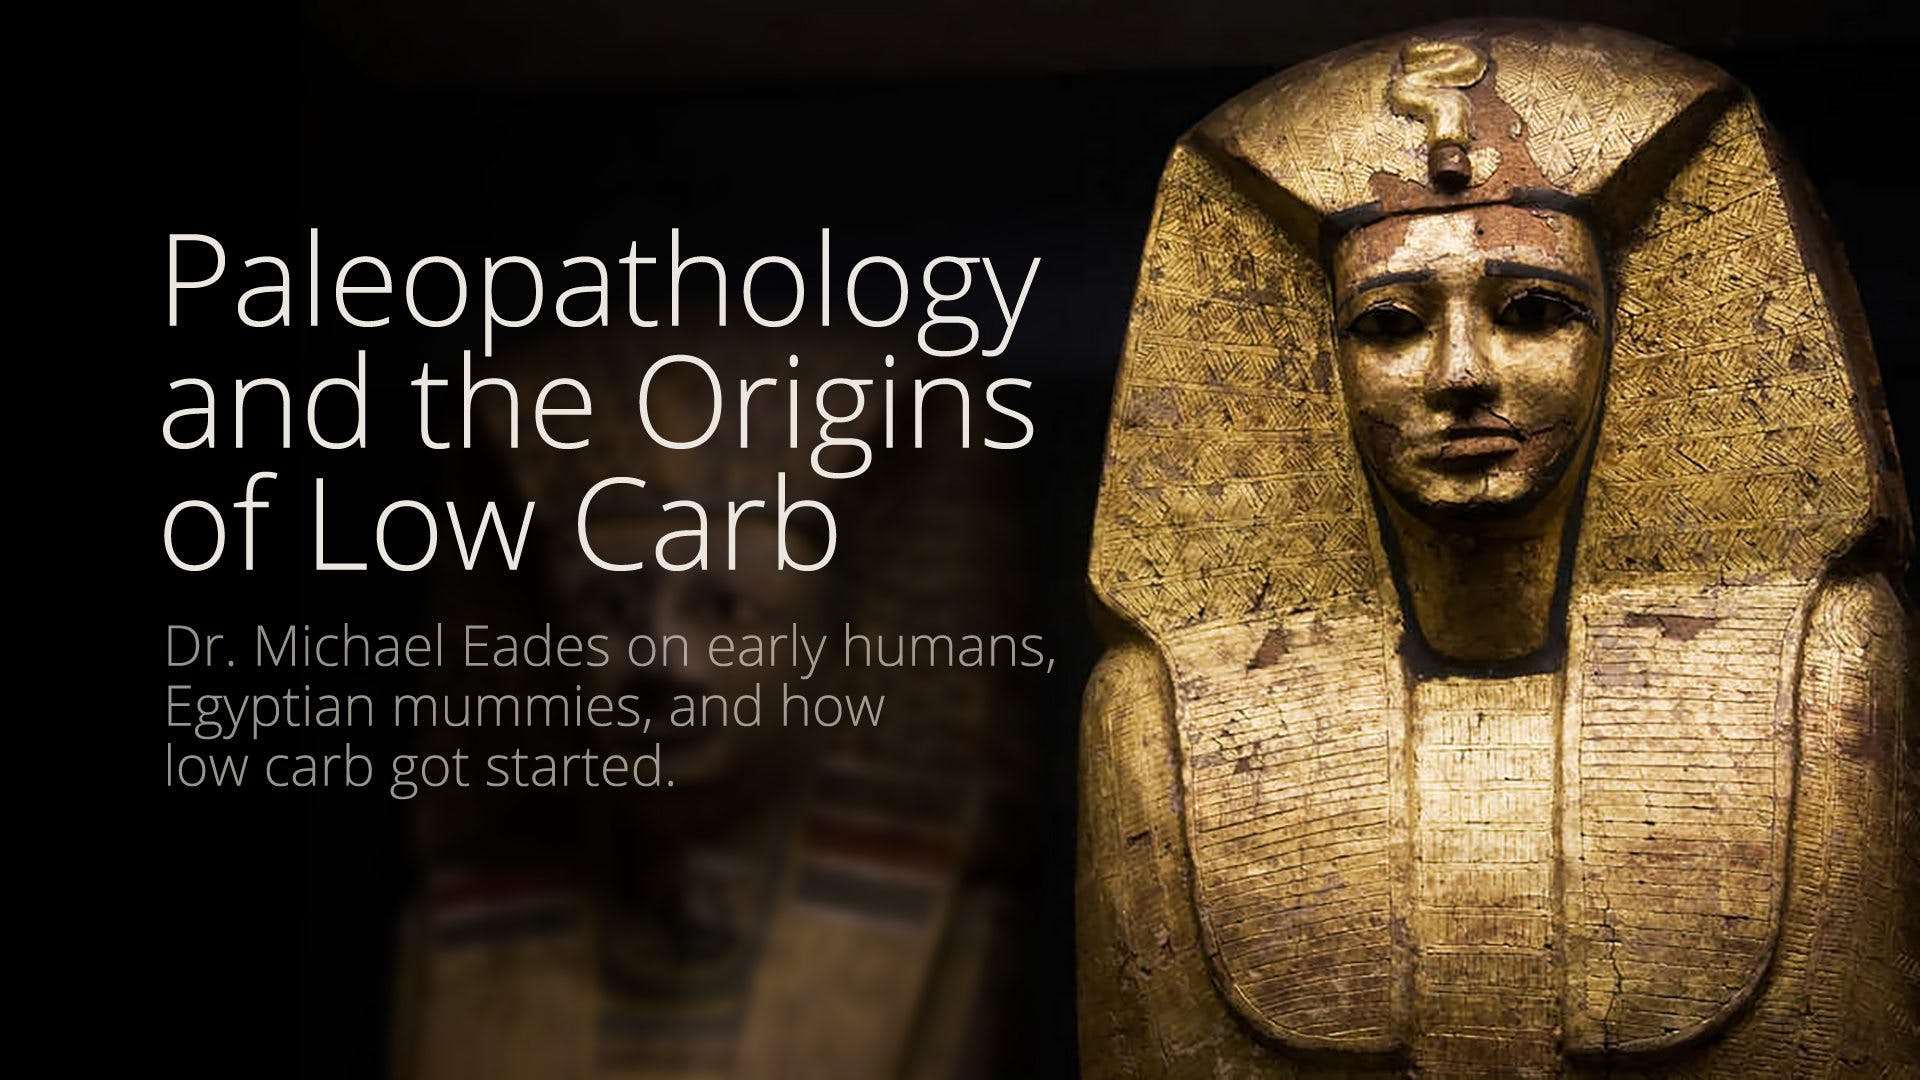 Paleopathology and the Origins of Low Carb